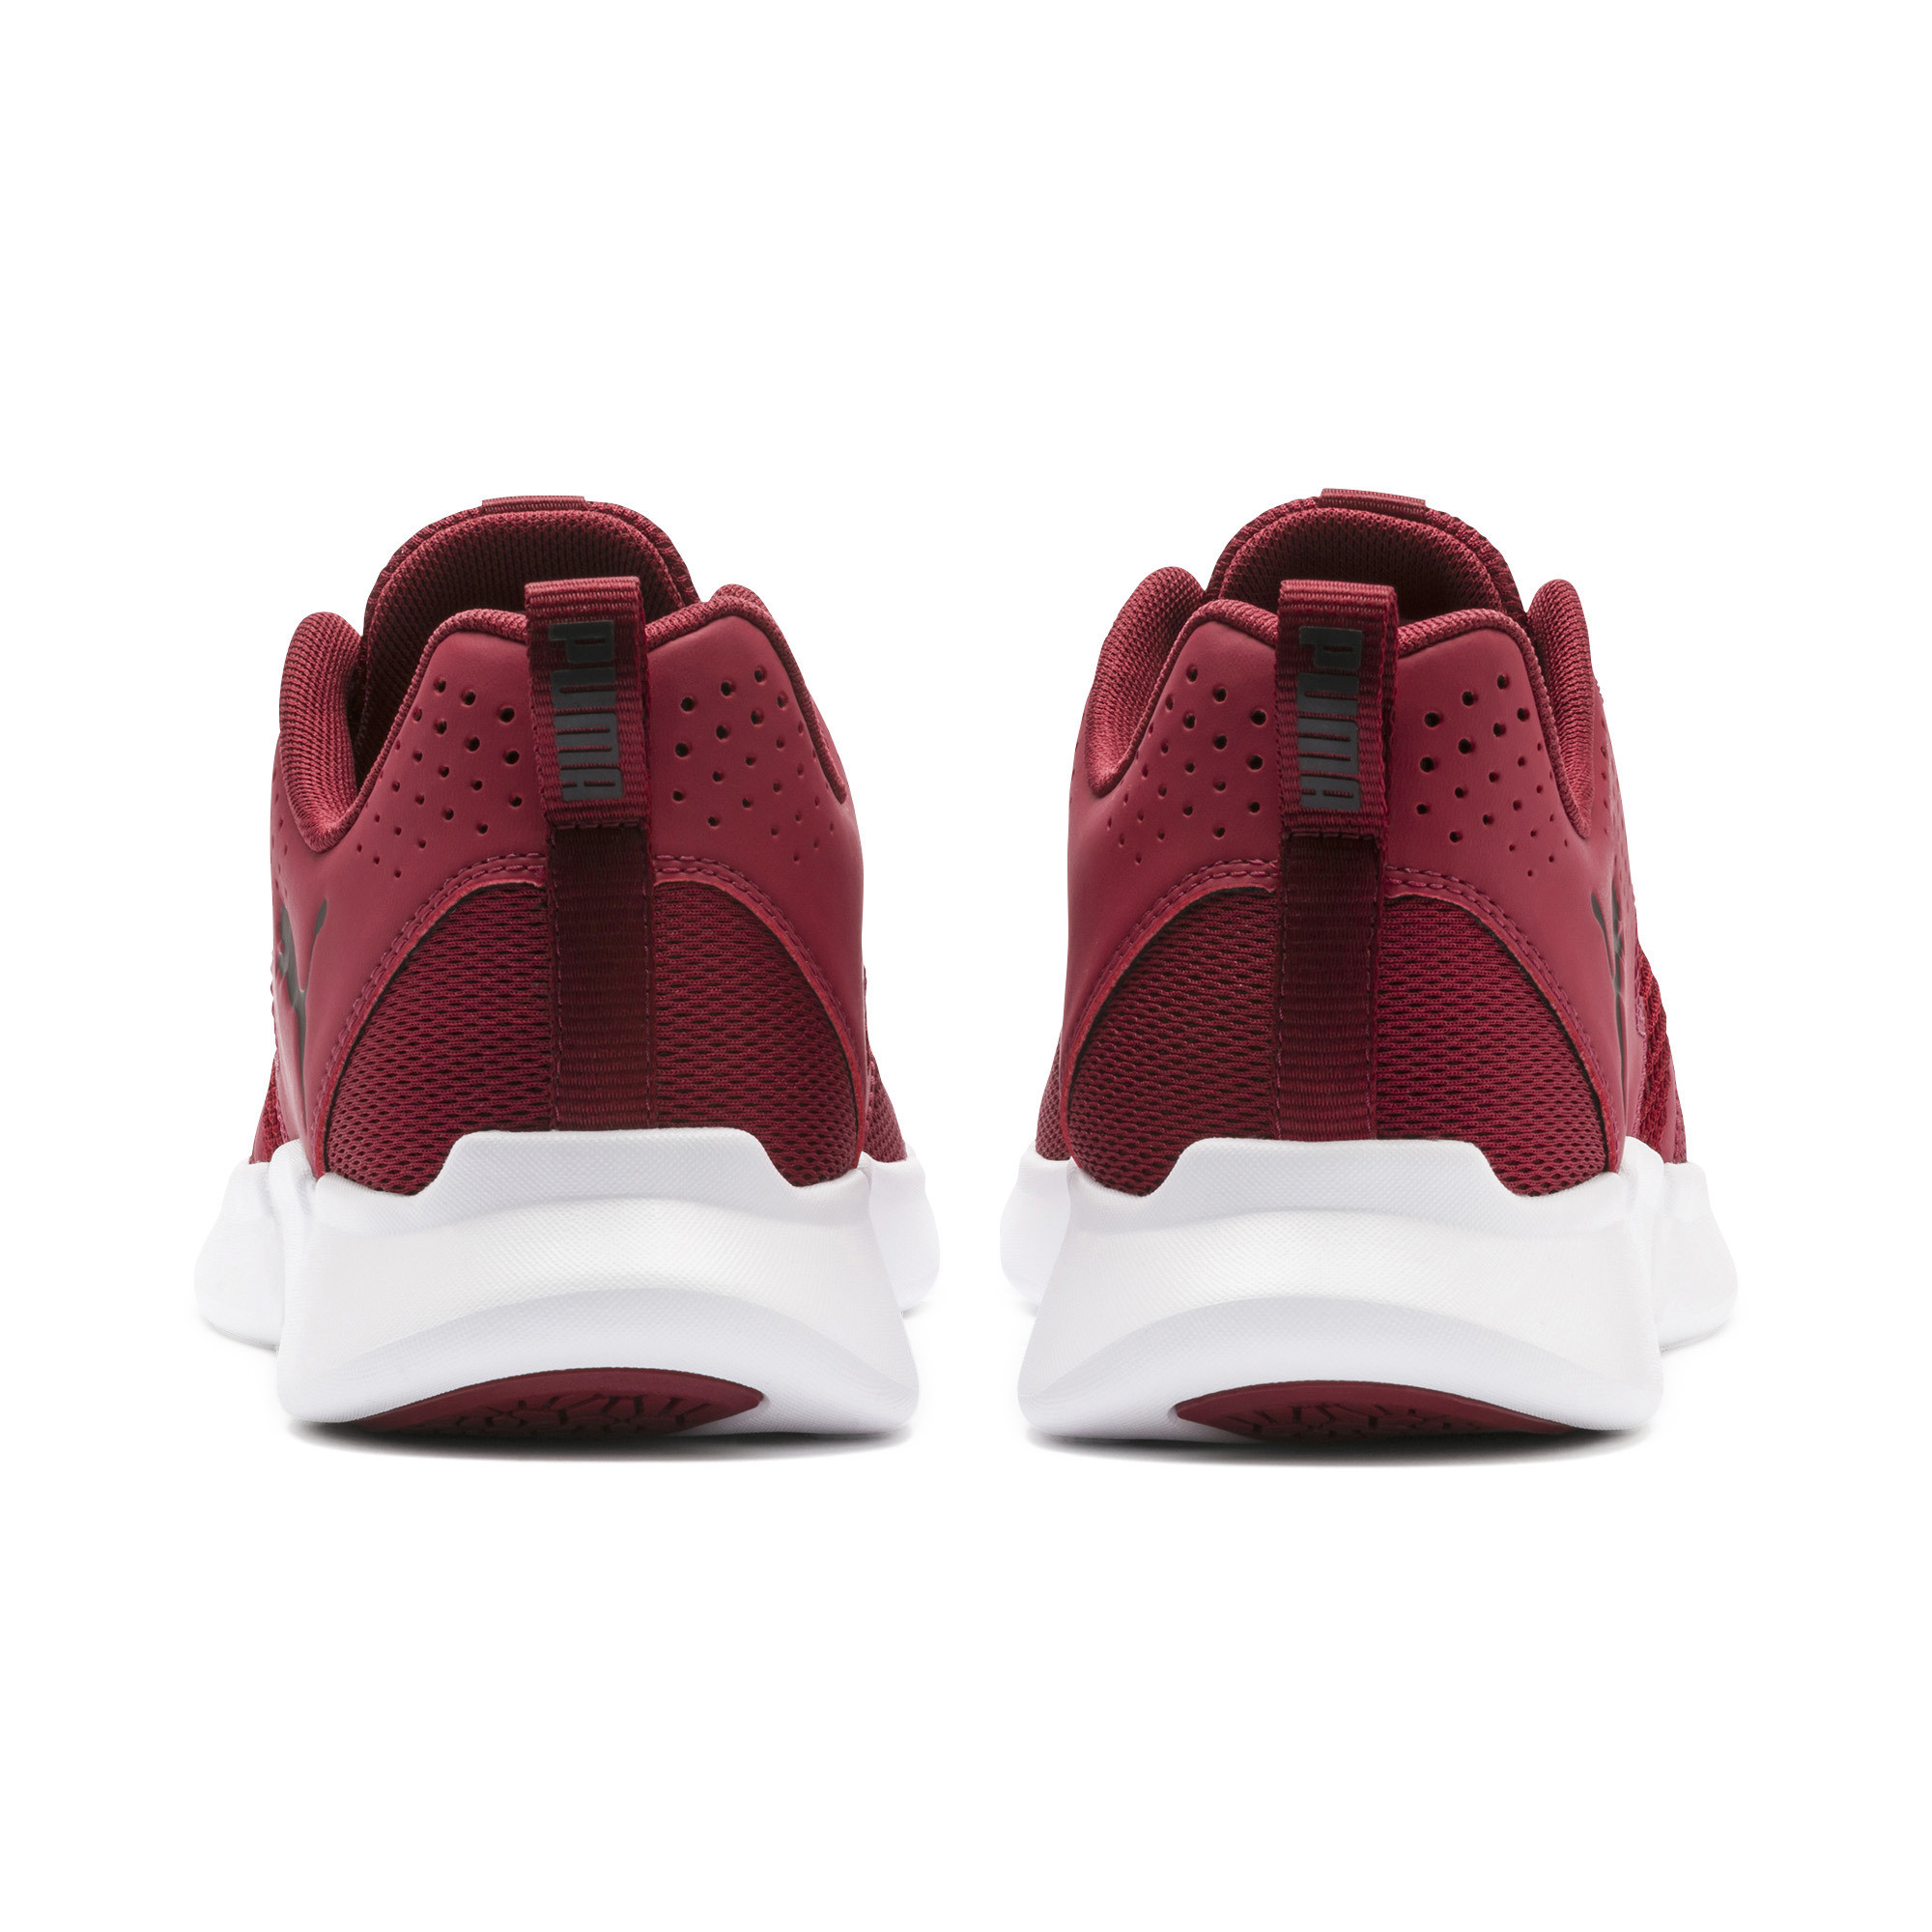 PUMA-INTERFLEX-Modern-Men-039-s-Sneakers-Unisex-Shoe-Running thumbnail 18